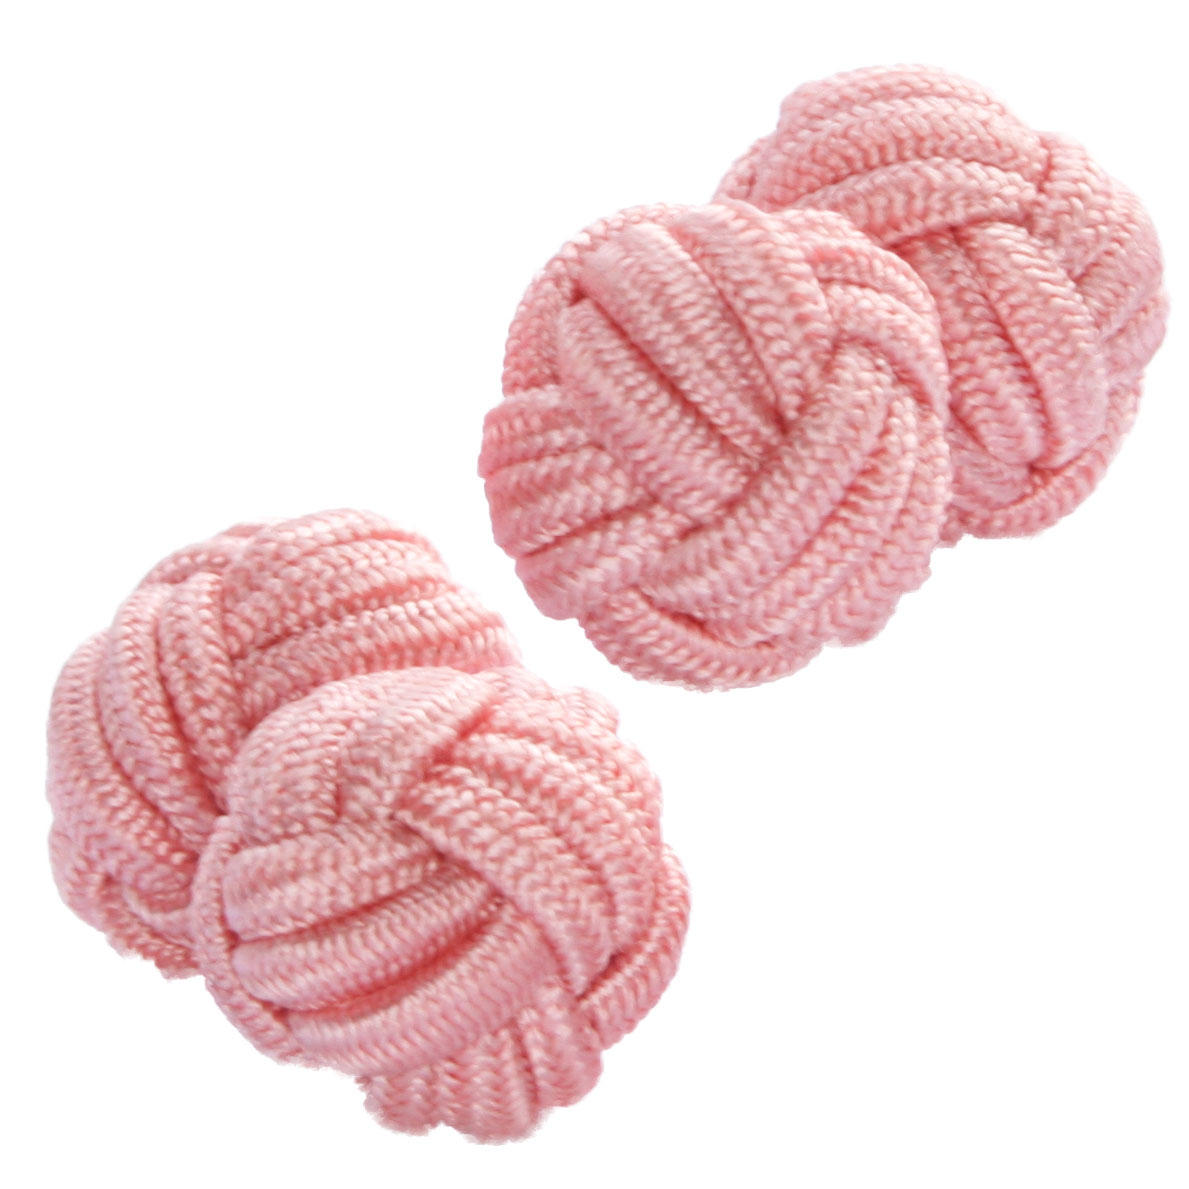 Coral Pink Silk Knot Cufflinks from Cuffs & Co